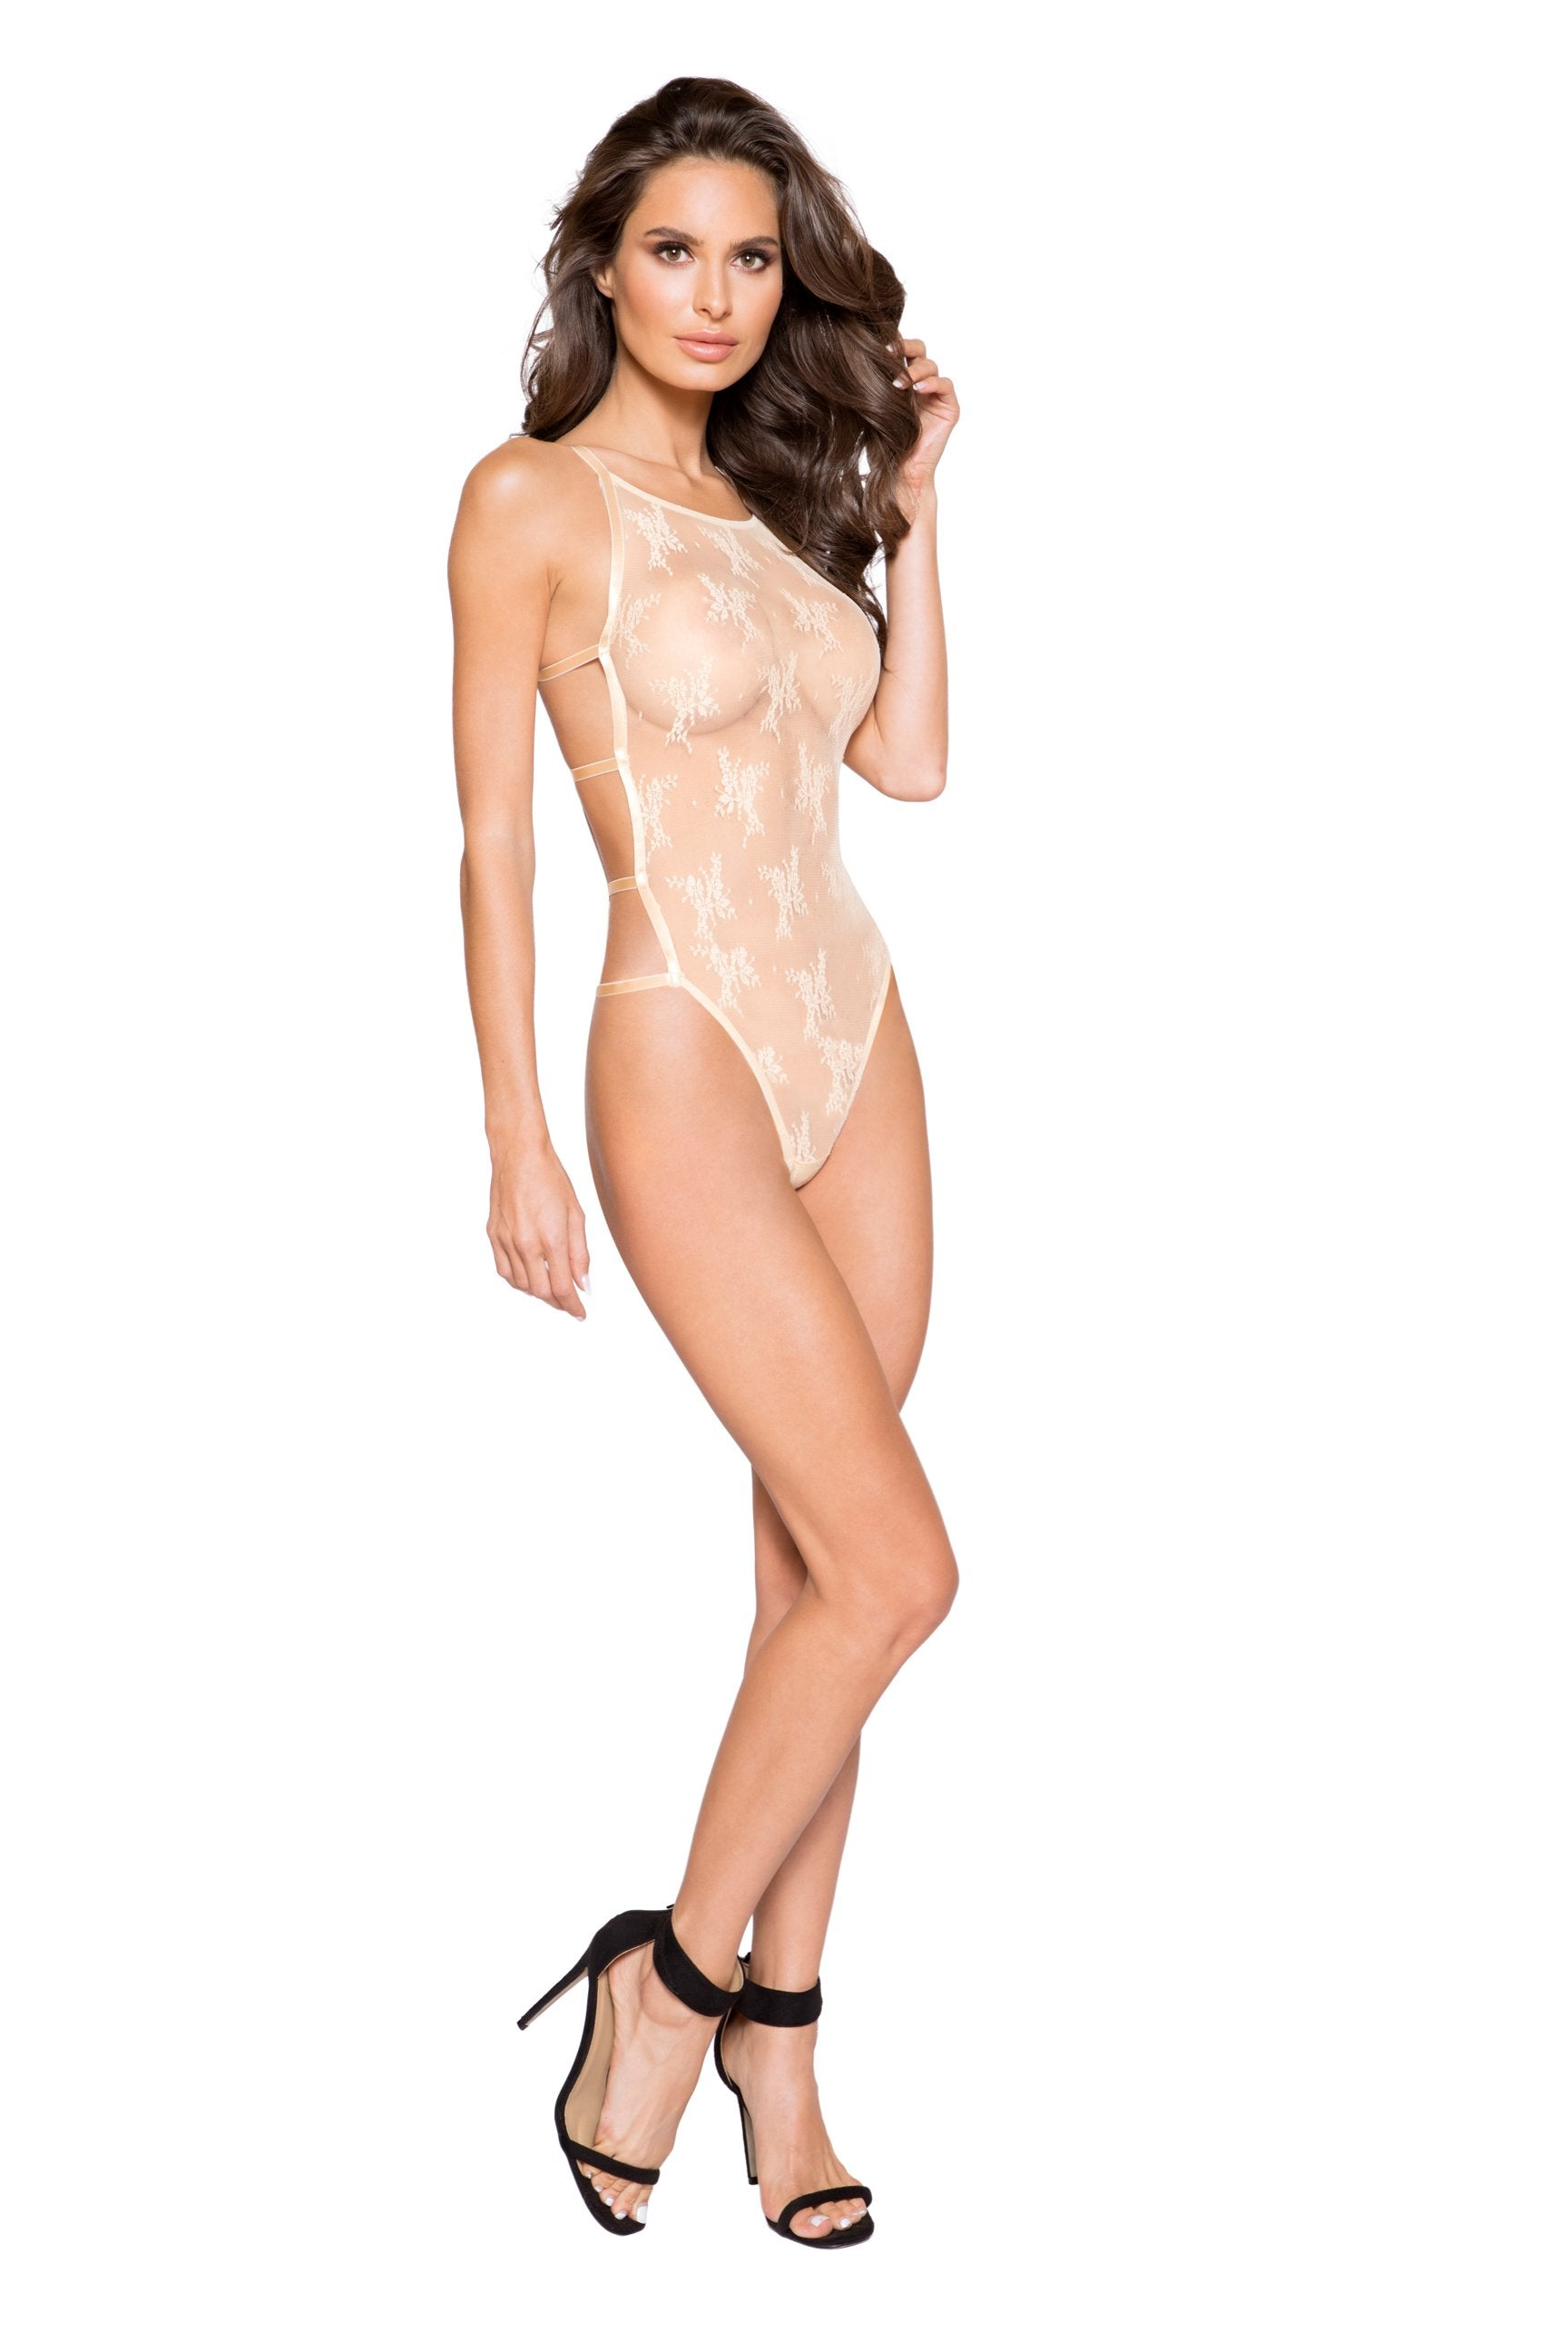 LI272 & LI273 - Classic Full Front Cover Lace Teddy with Back Strap Details